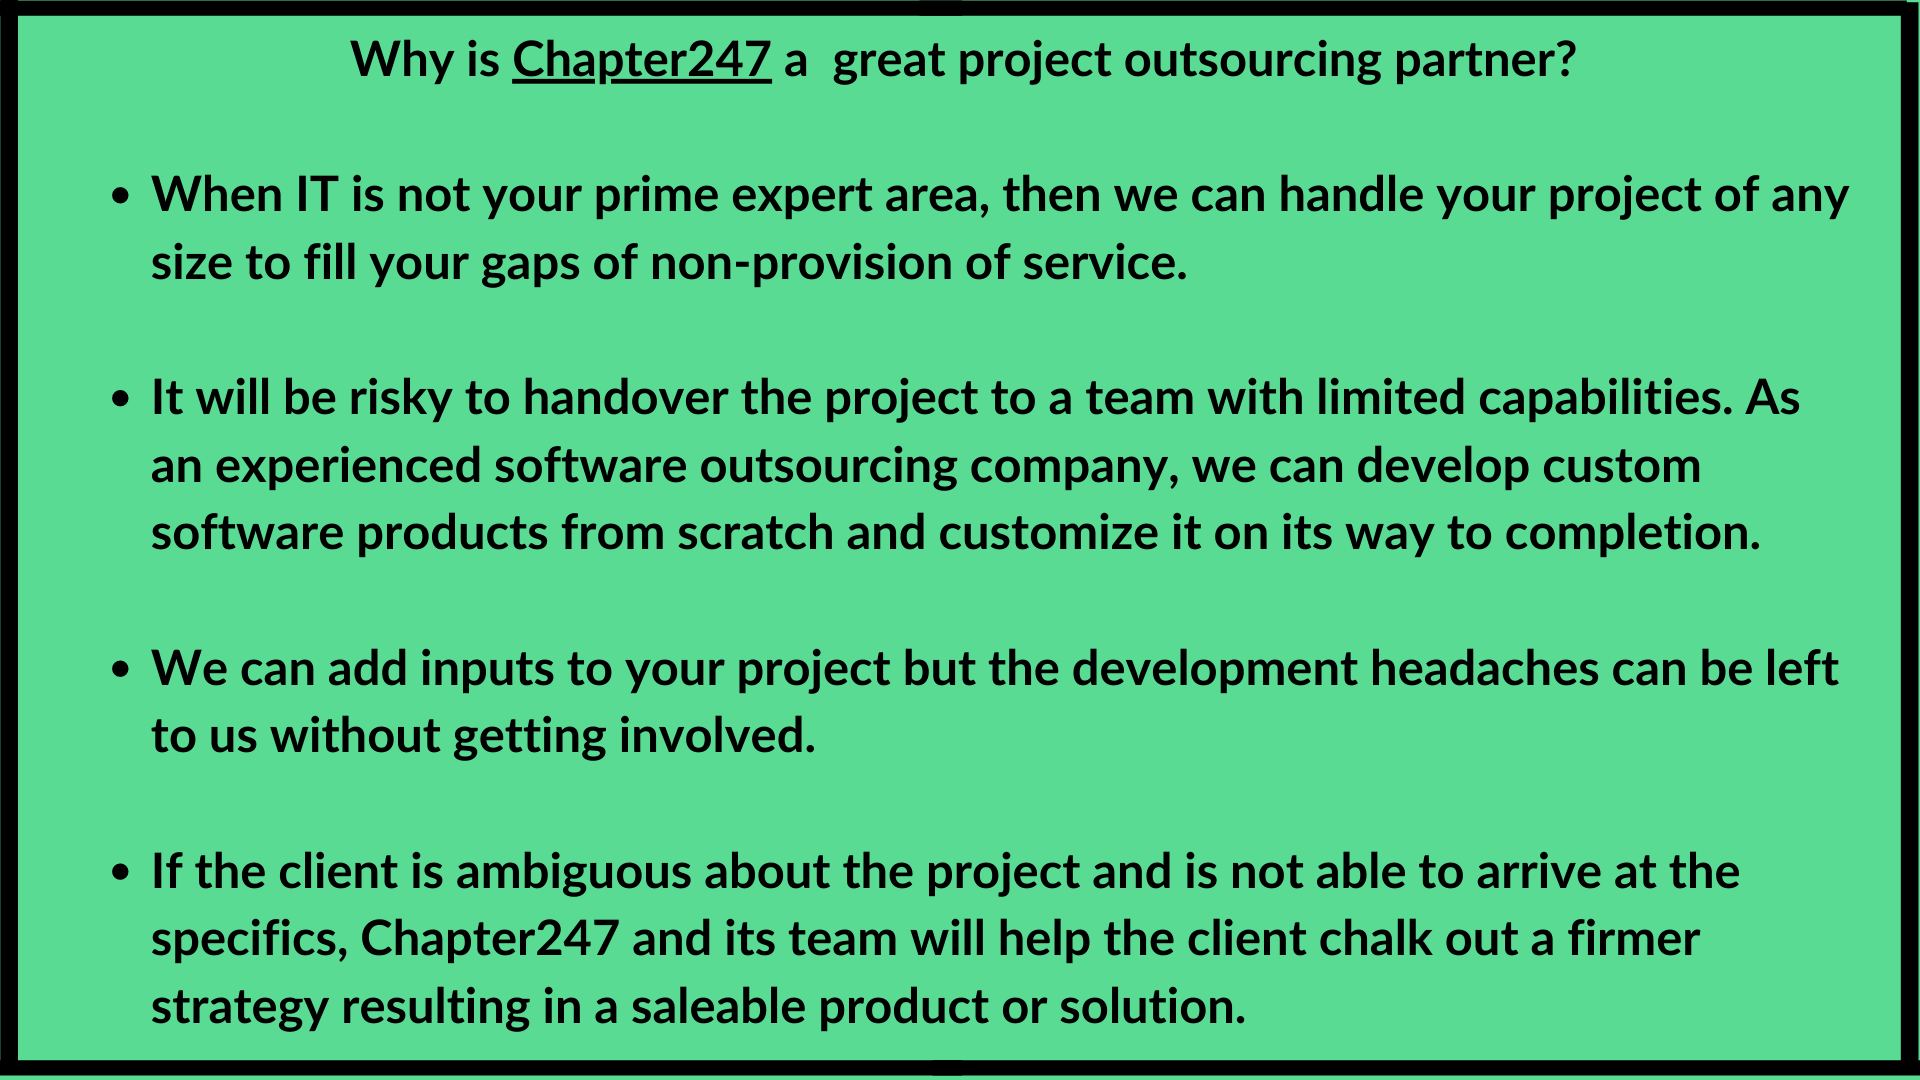 Why is Chapter247 a great project outsourcing partner_